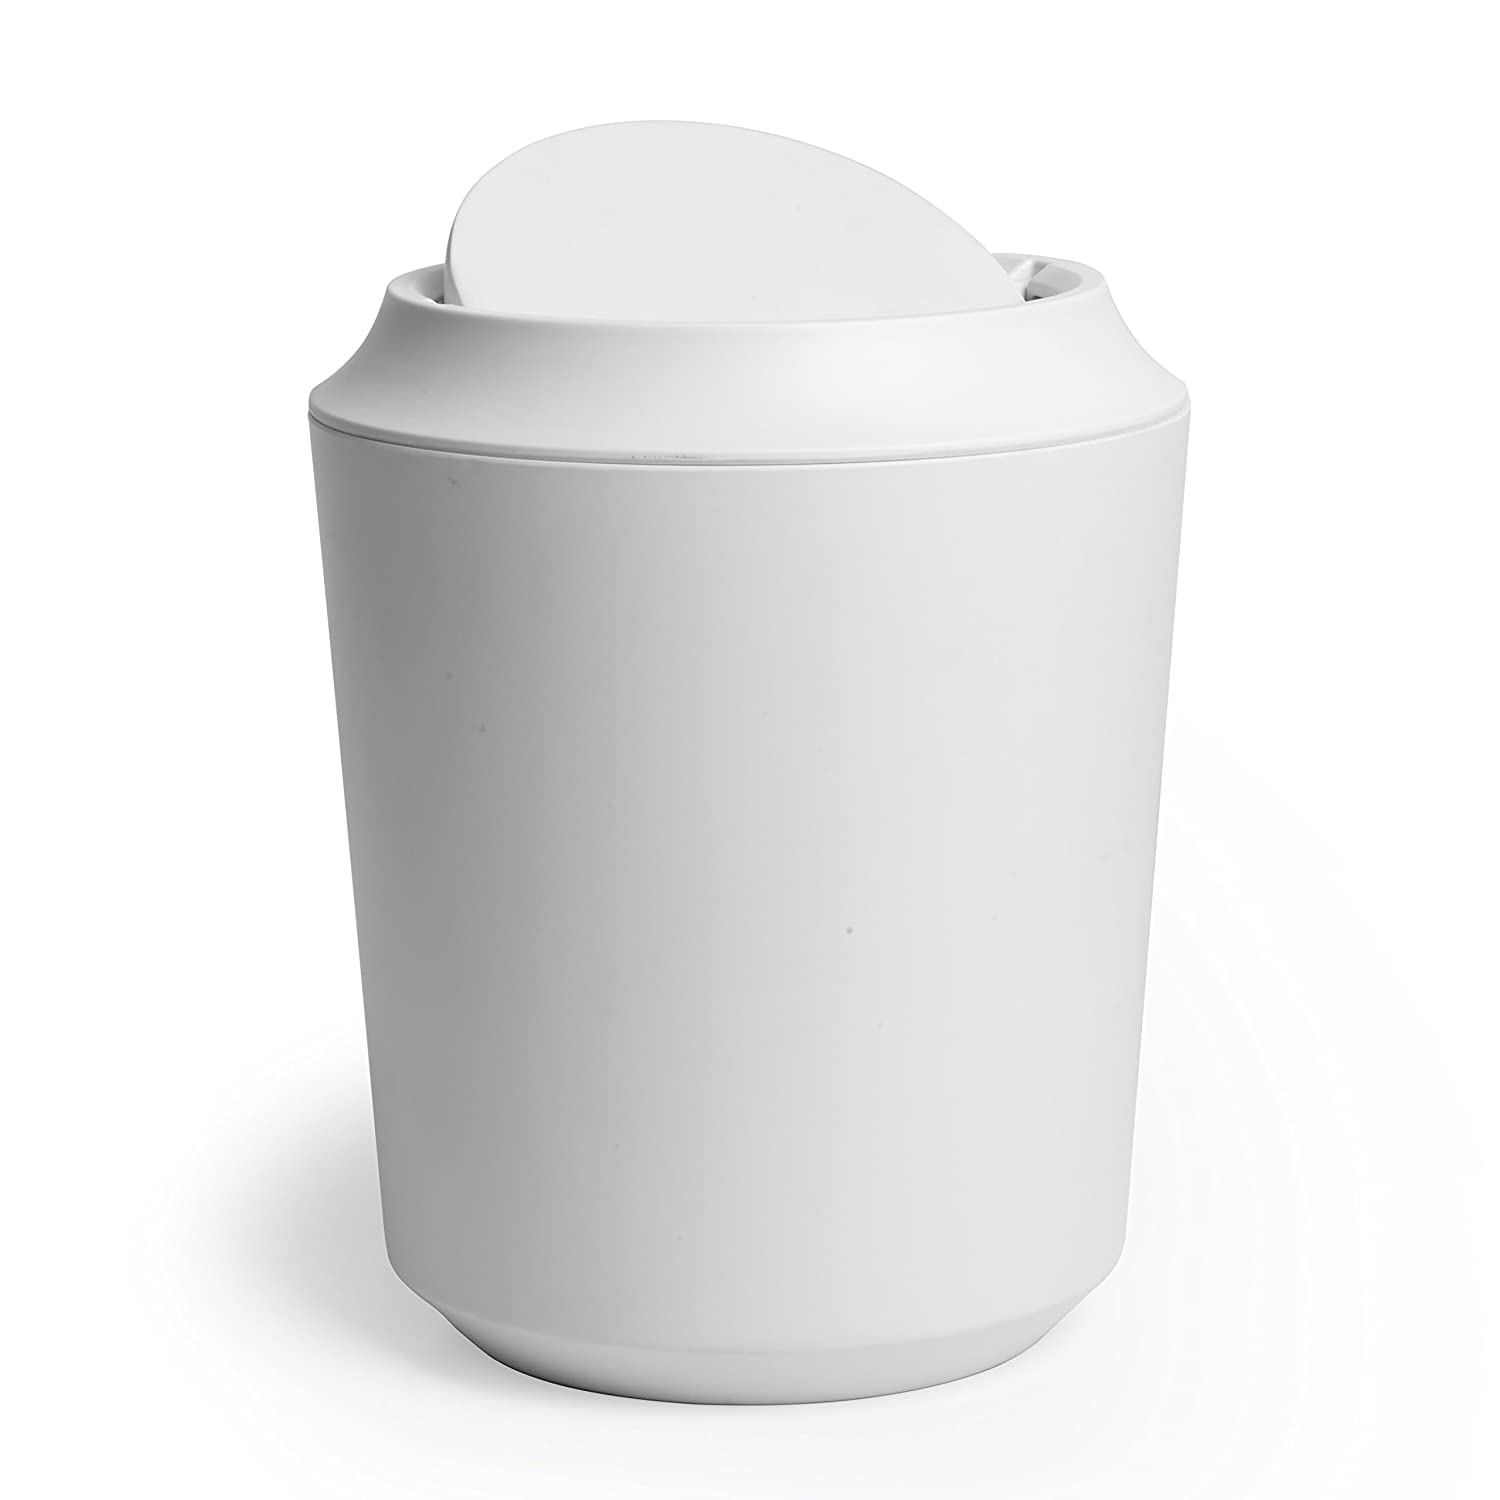 Amazoncom Umbra Corsa Bathroom Trash Can With Lid Small Waste